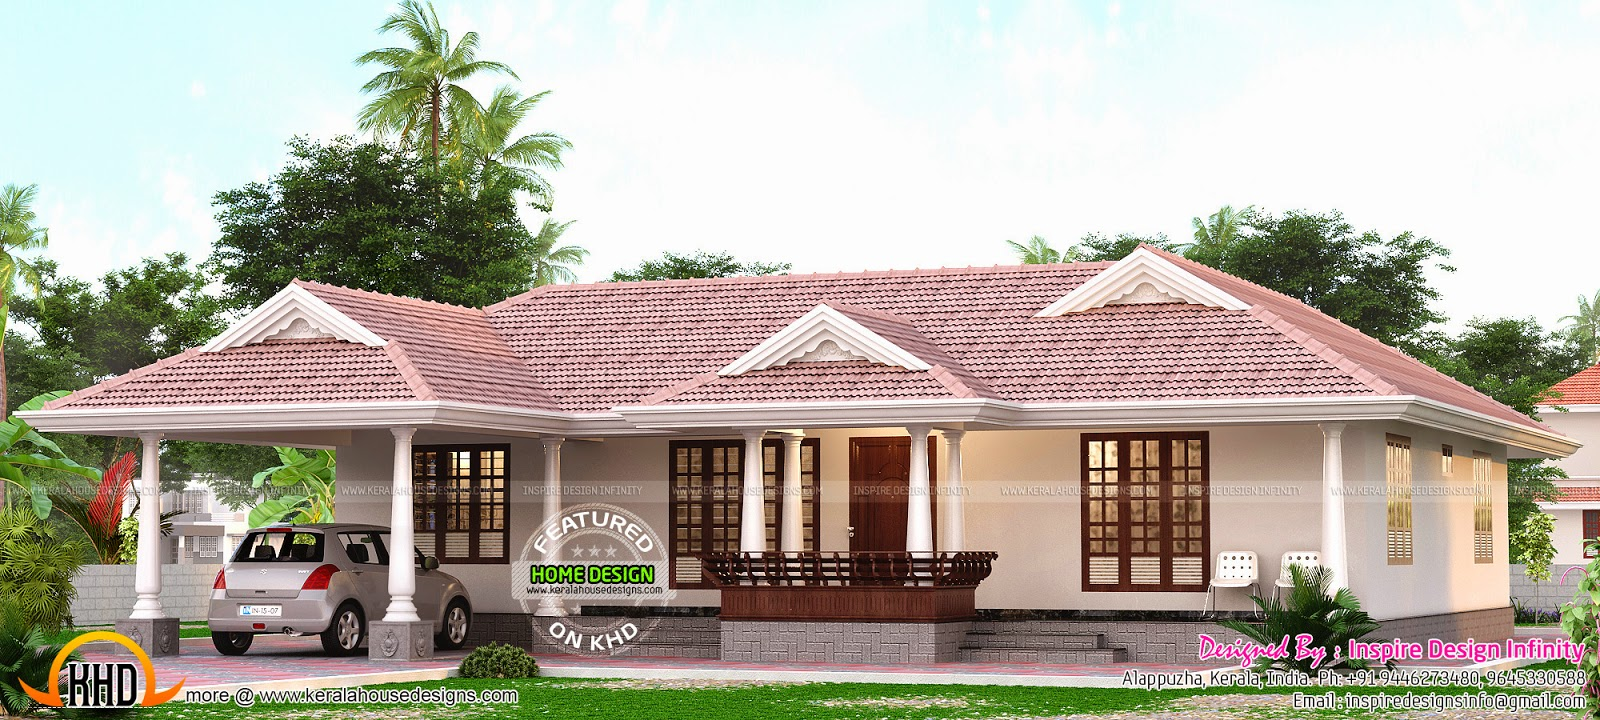 House plans kerala style traditional for Traditional indian house designs